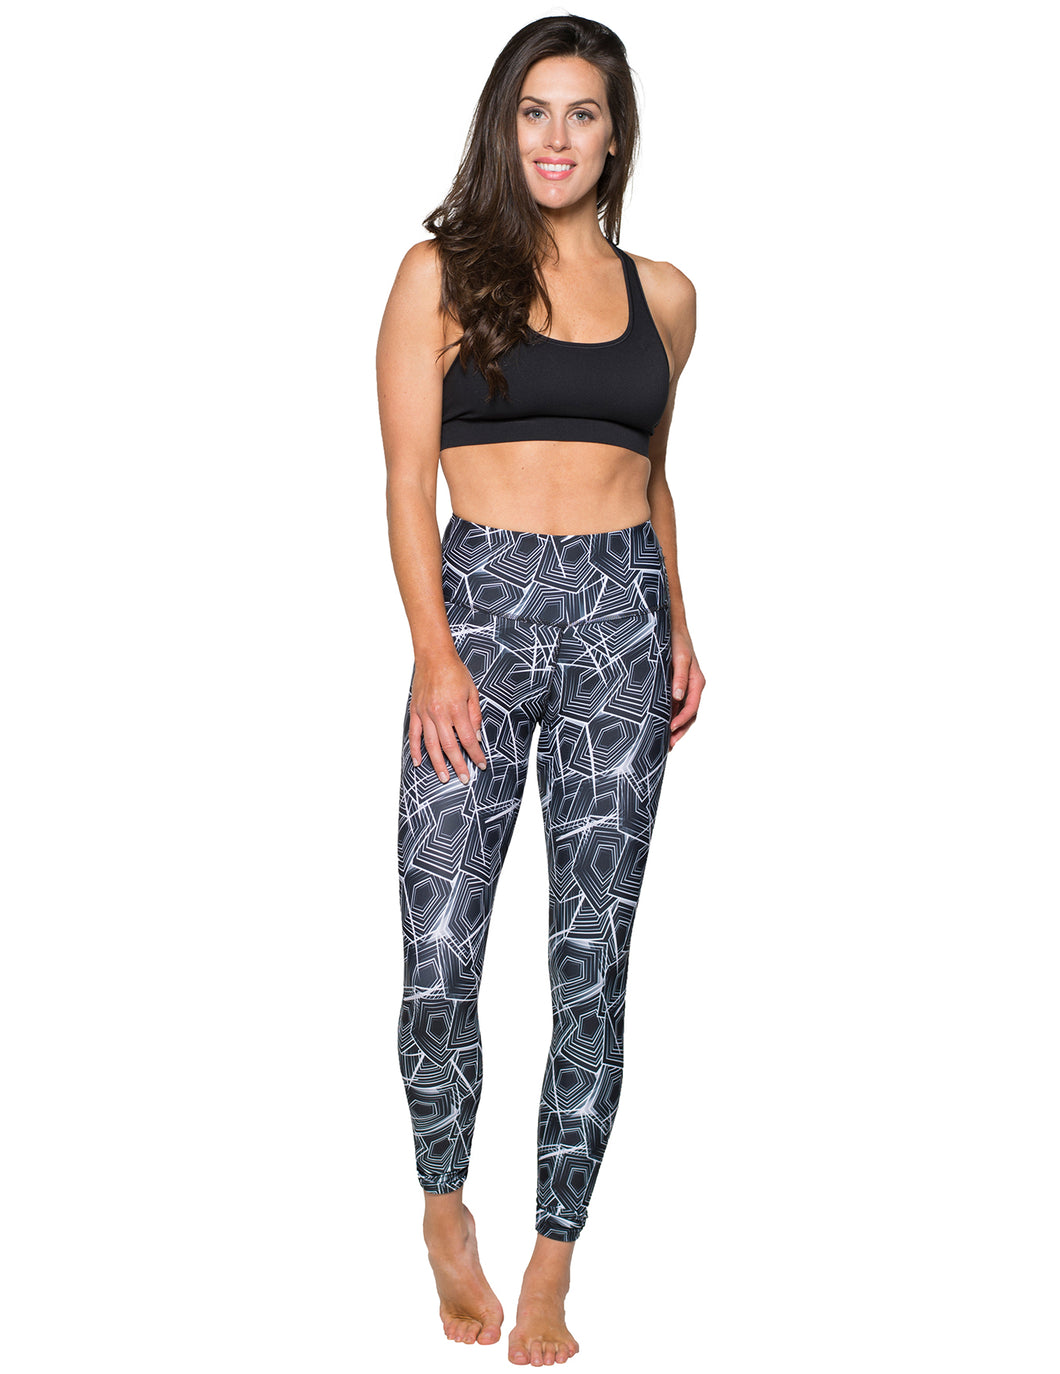 Luxe Mineral Infused Leggings - Mystic Maze